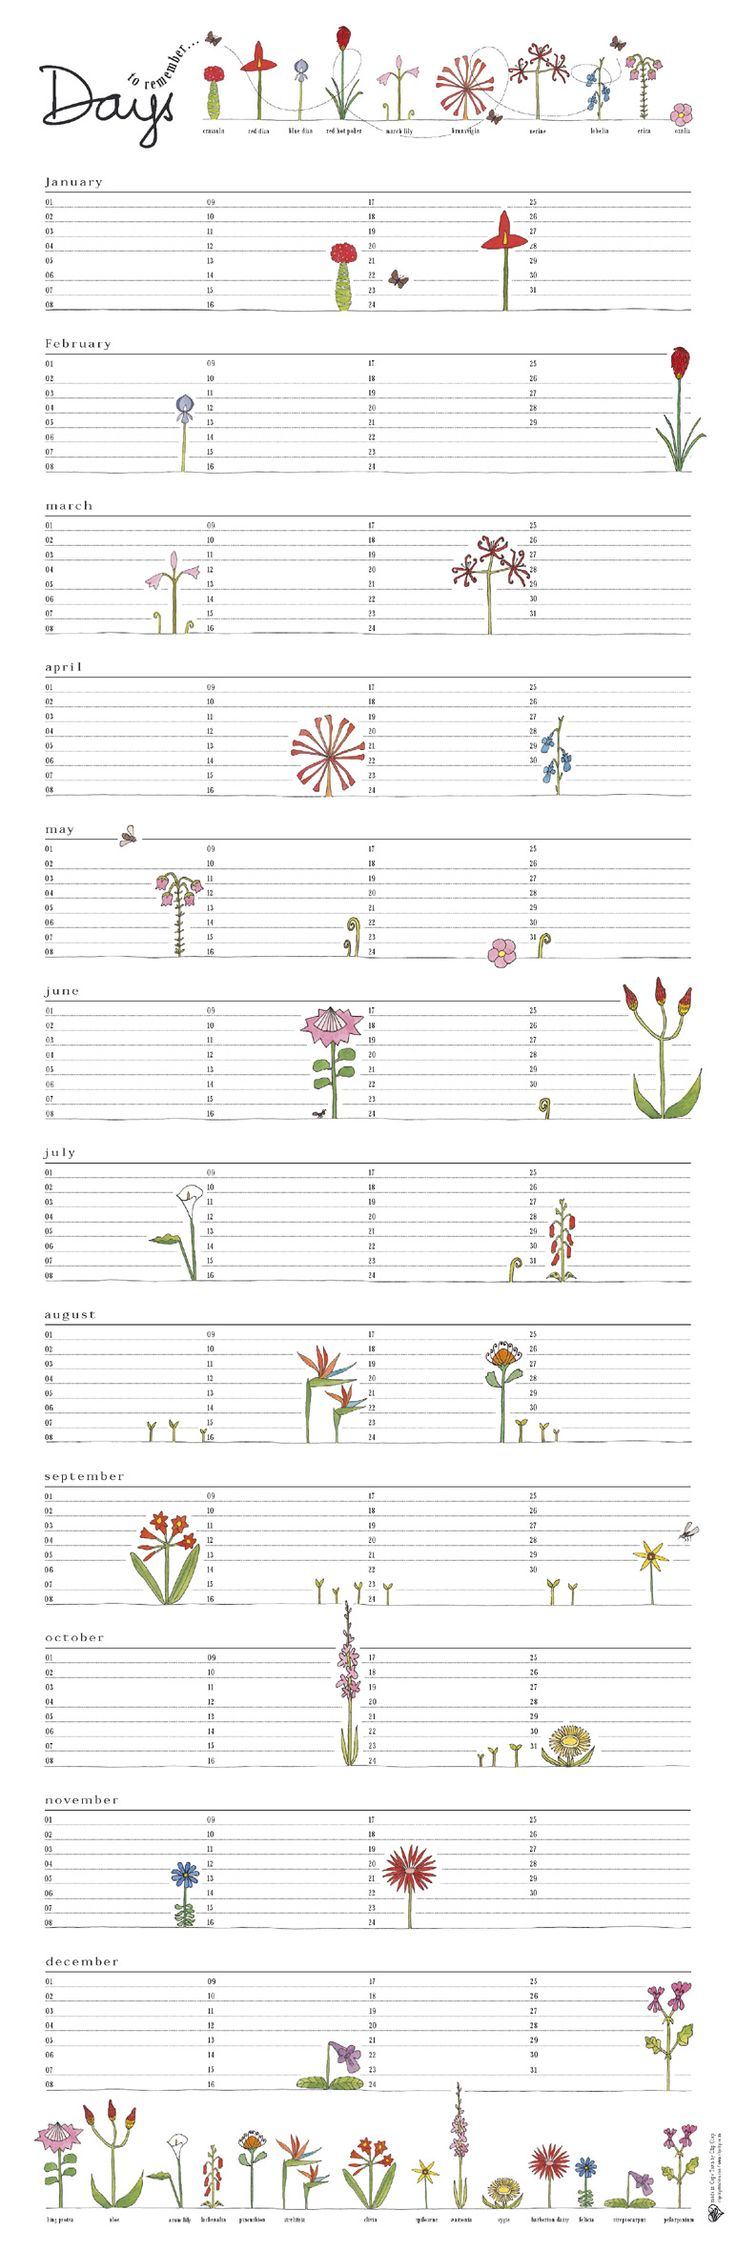 Birthday calendar by Clip Clop with indigenous flowers placed in their blooming month!